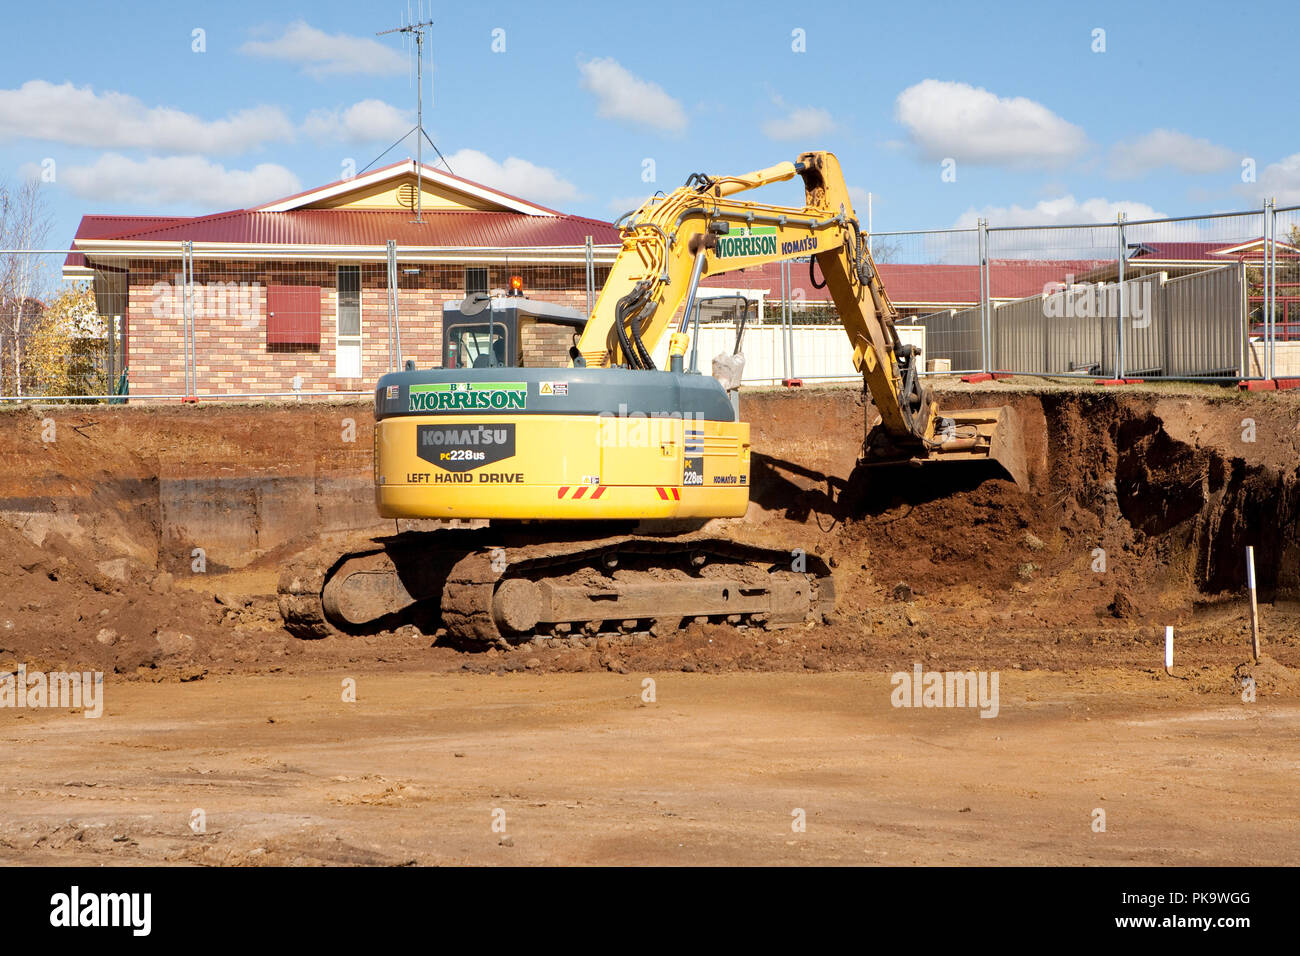 Housing construction site, Dubbo, New South Wales, Australia - Stock Image